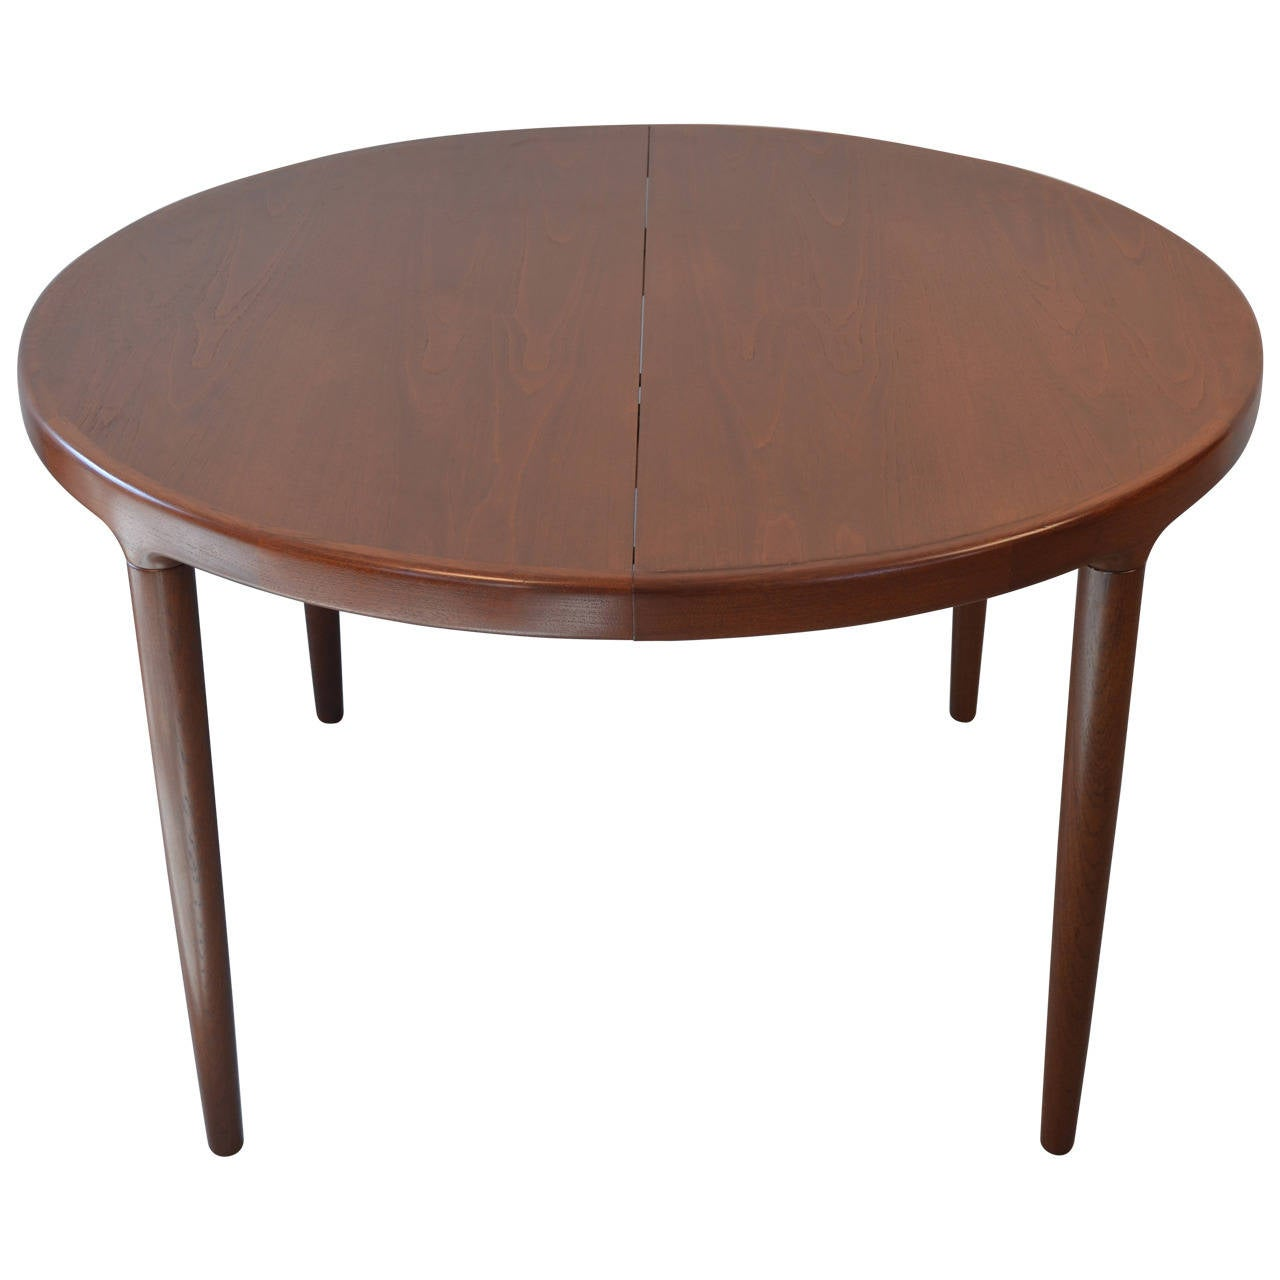 Round dining table with two leaves for sale at 1stdibs for Round dining table